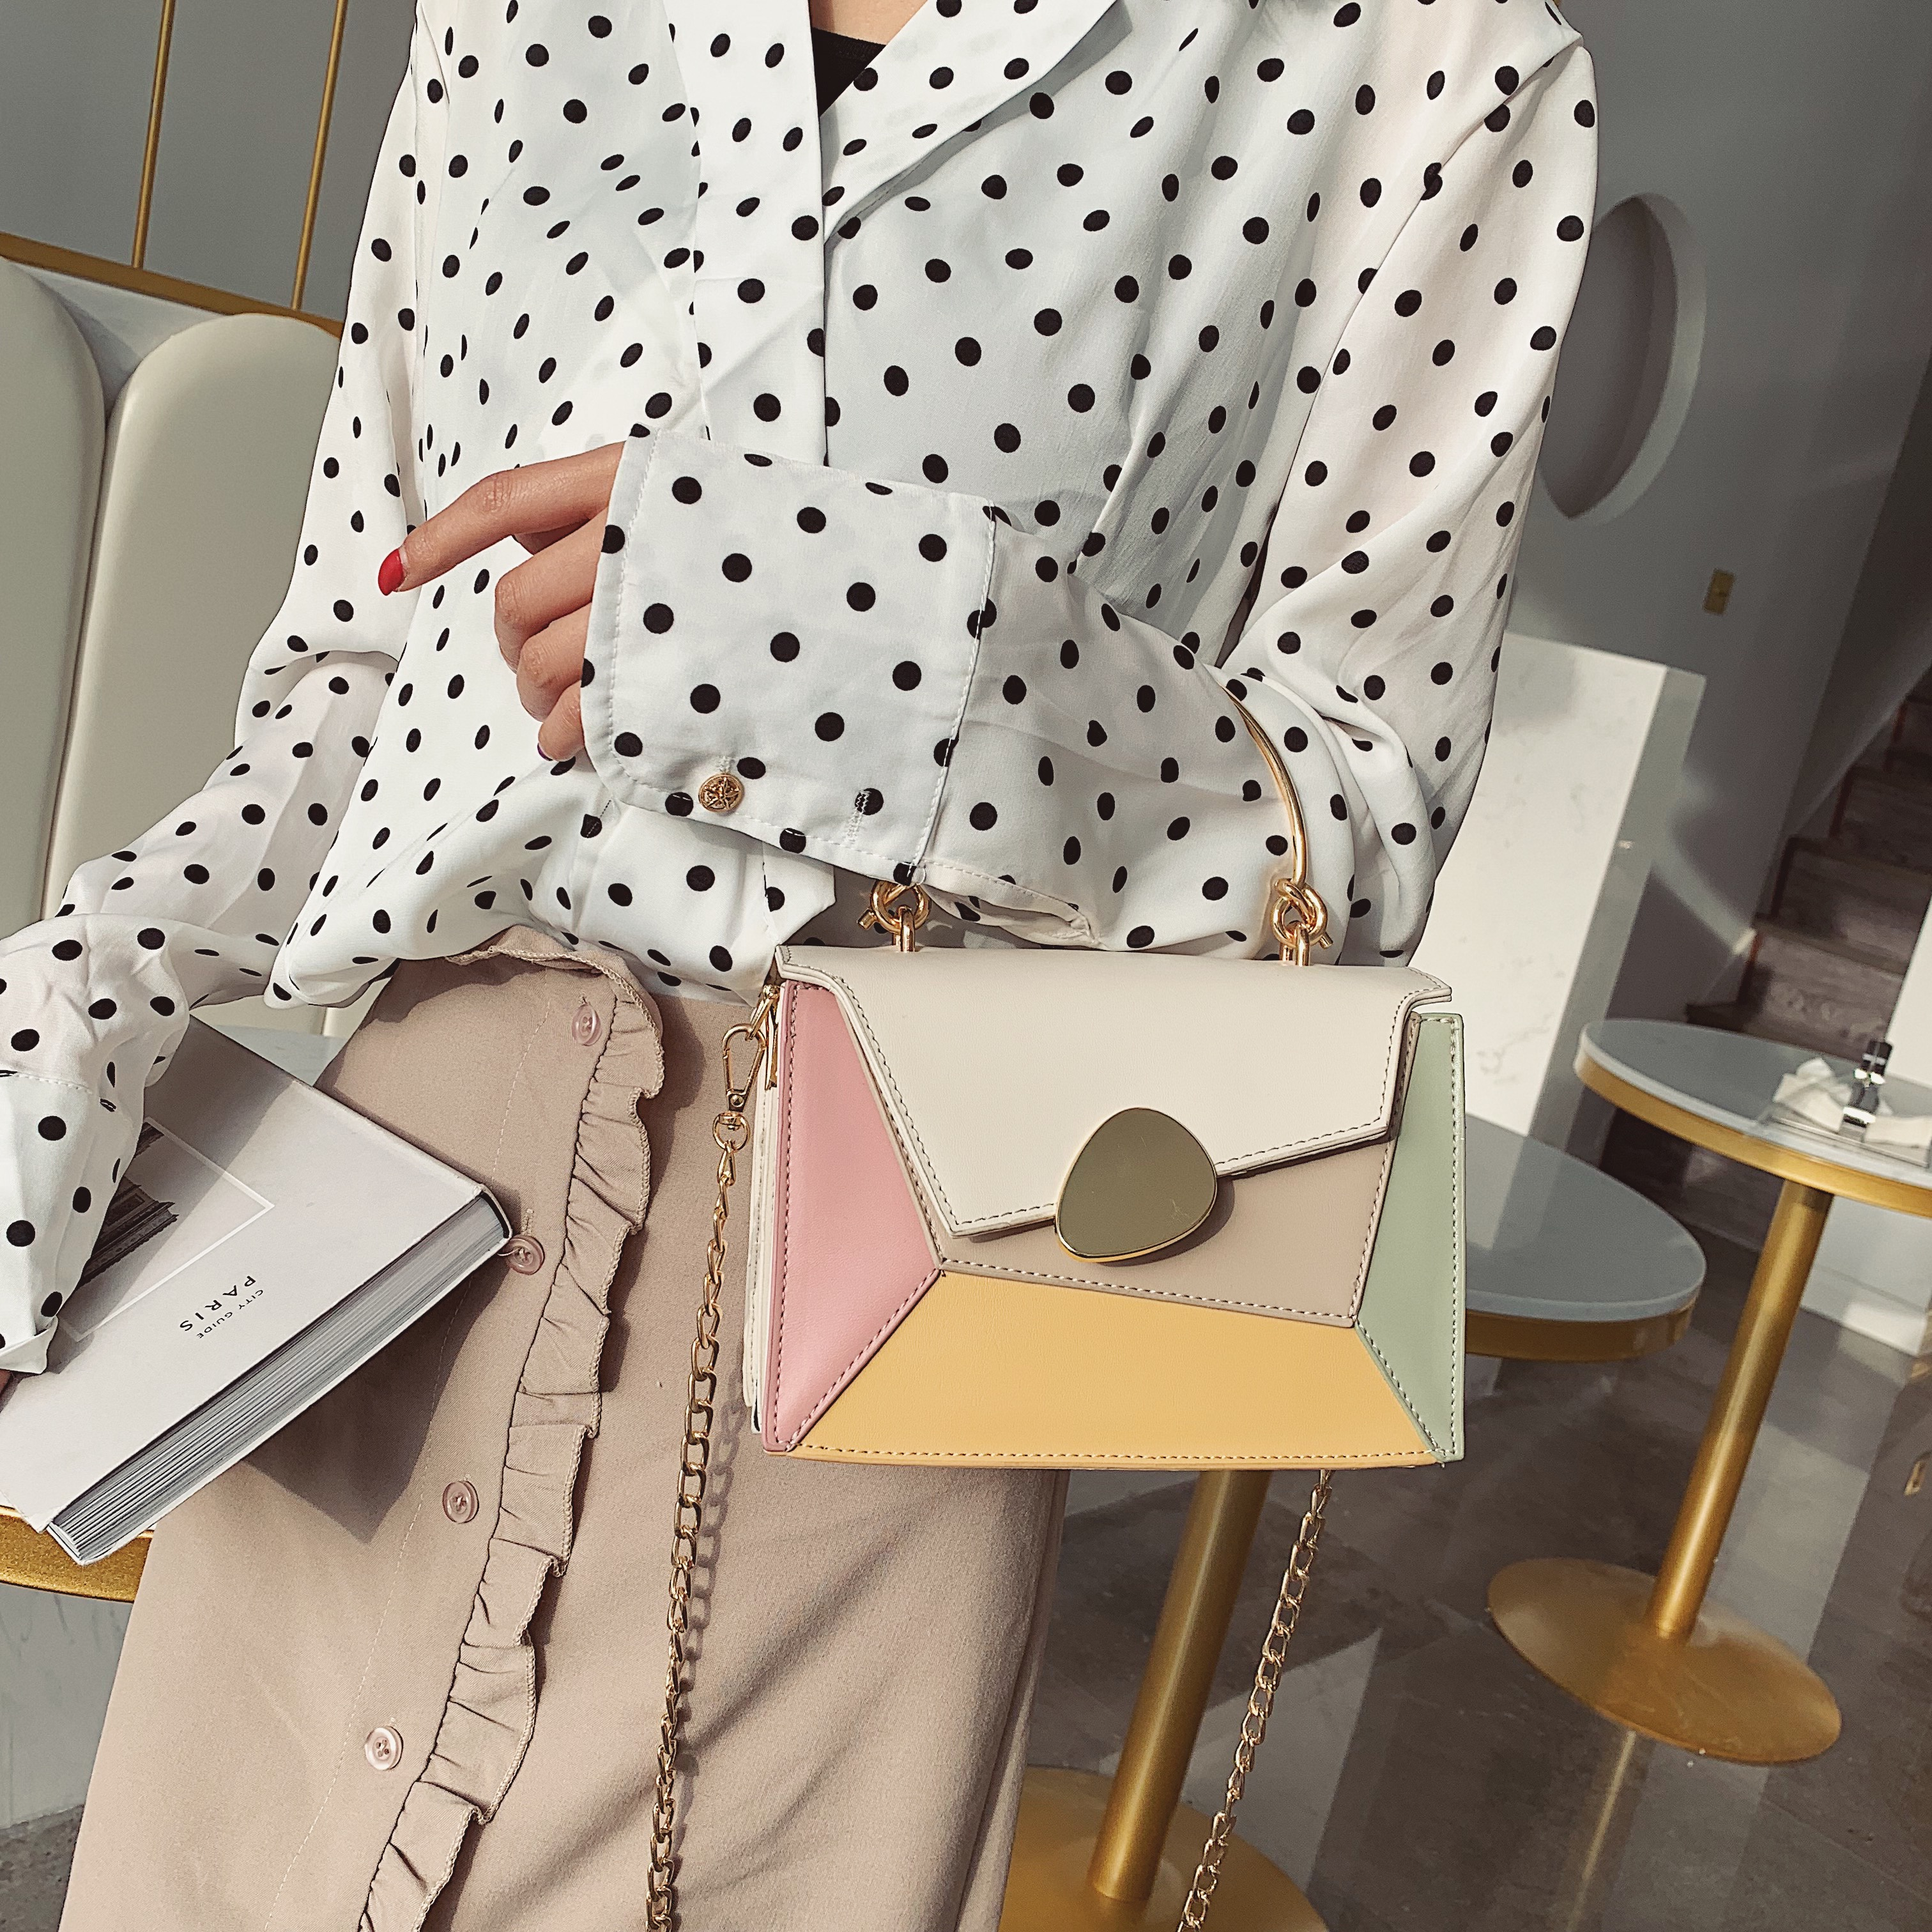 Contrast Color PU Leather Crossbody Bags For Women 2019 Chain Handbags with Metal Handle Shoulder Messenger Bag Small Totes